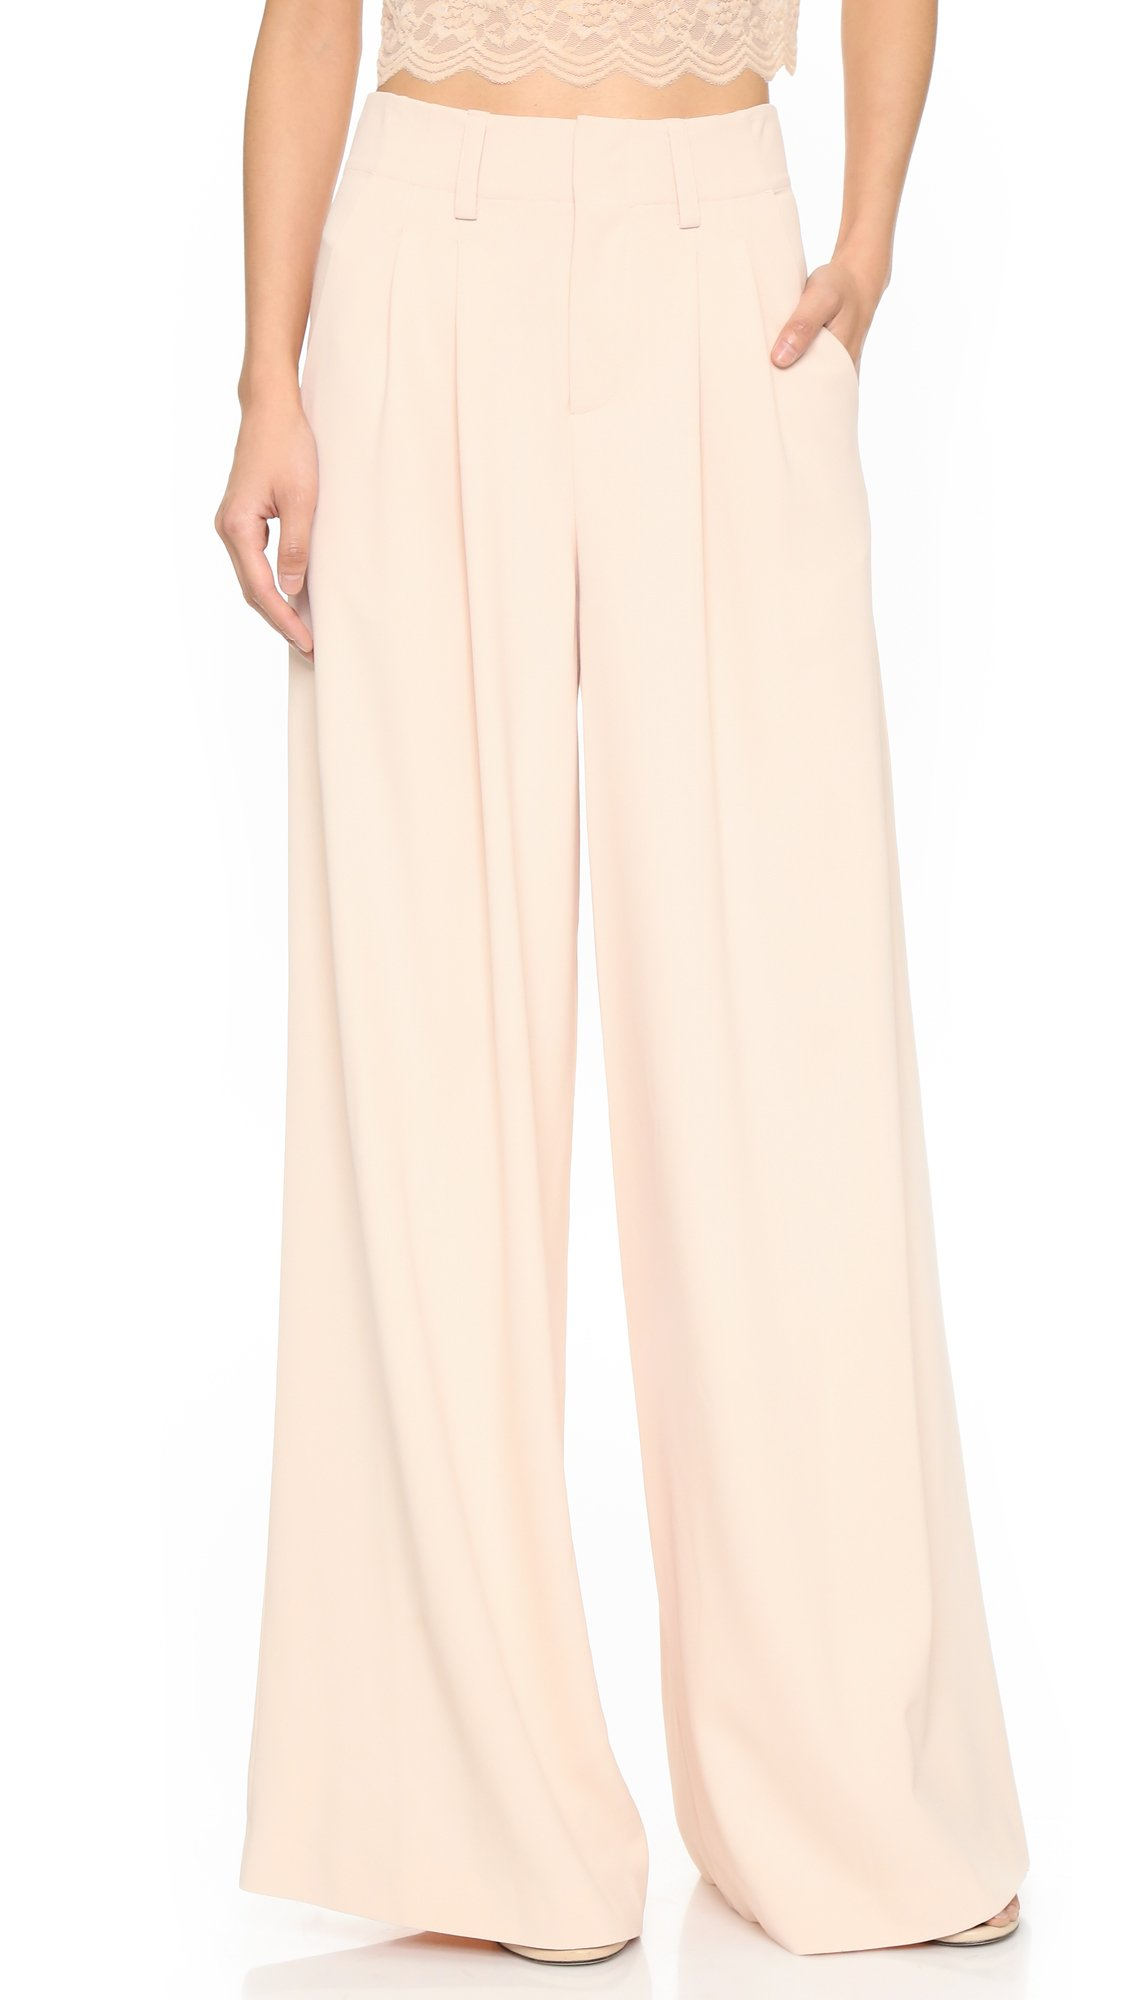 Find women's wide leg pants at ShopStyle. Shop the latest collection of women's wide leg pants from the most popular stores - all in one place.